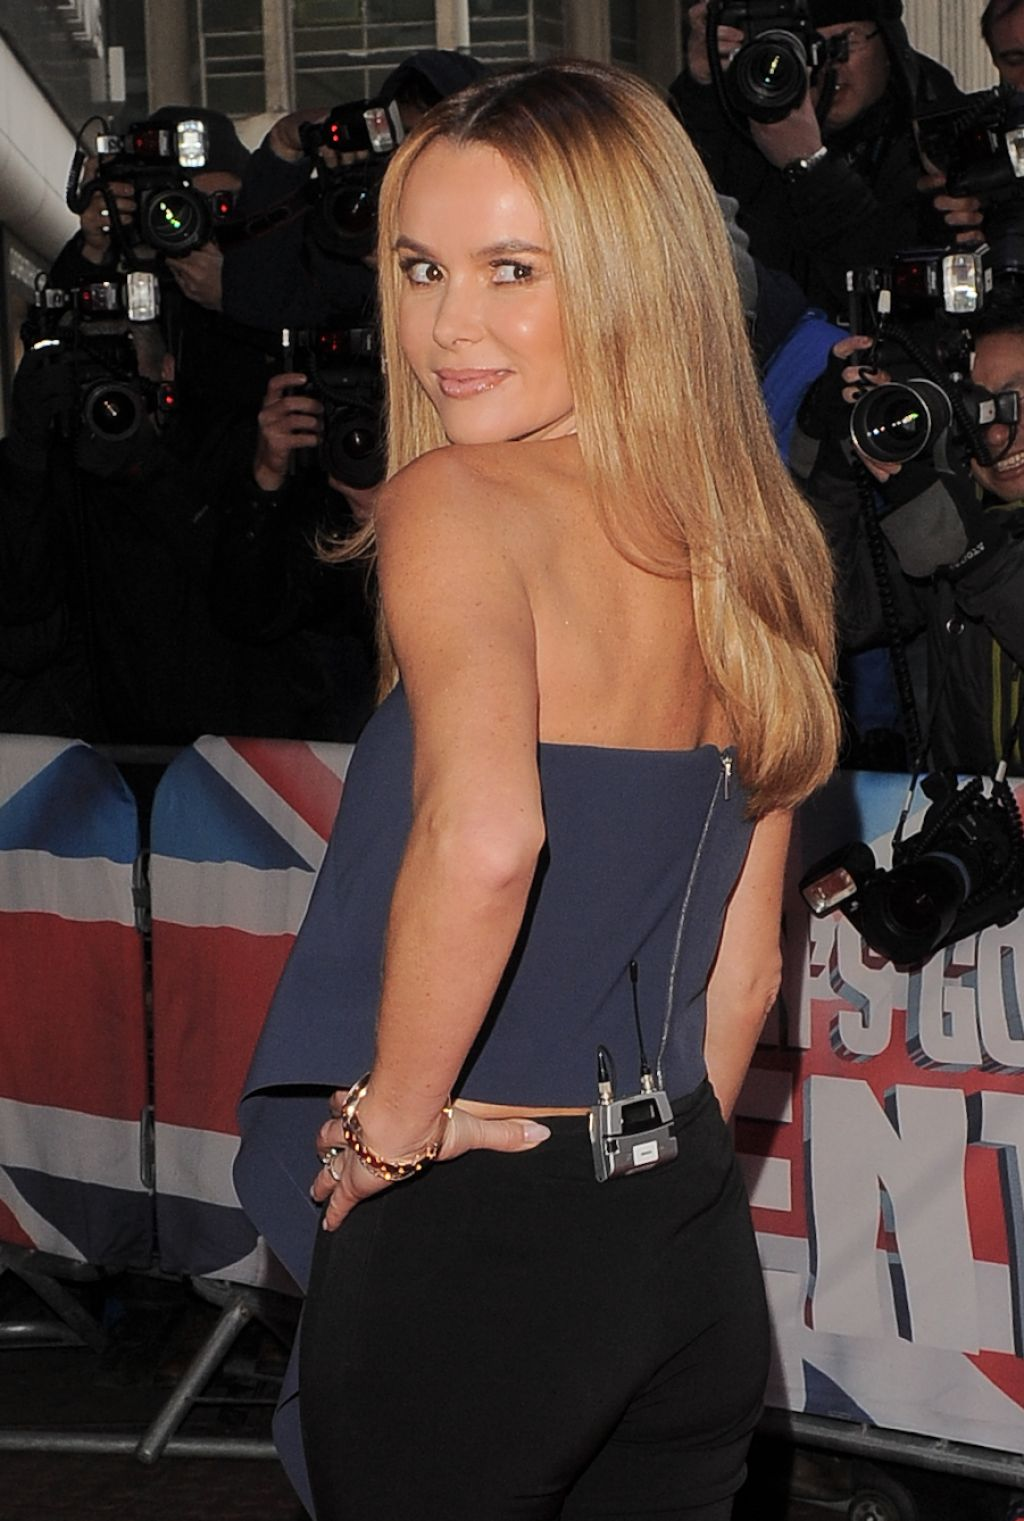 Amanda Holden Britain Got Talent Auditions London February 20 Bikini